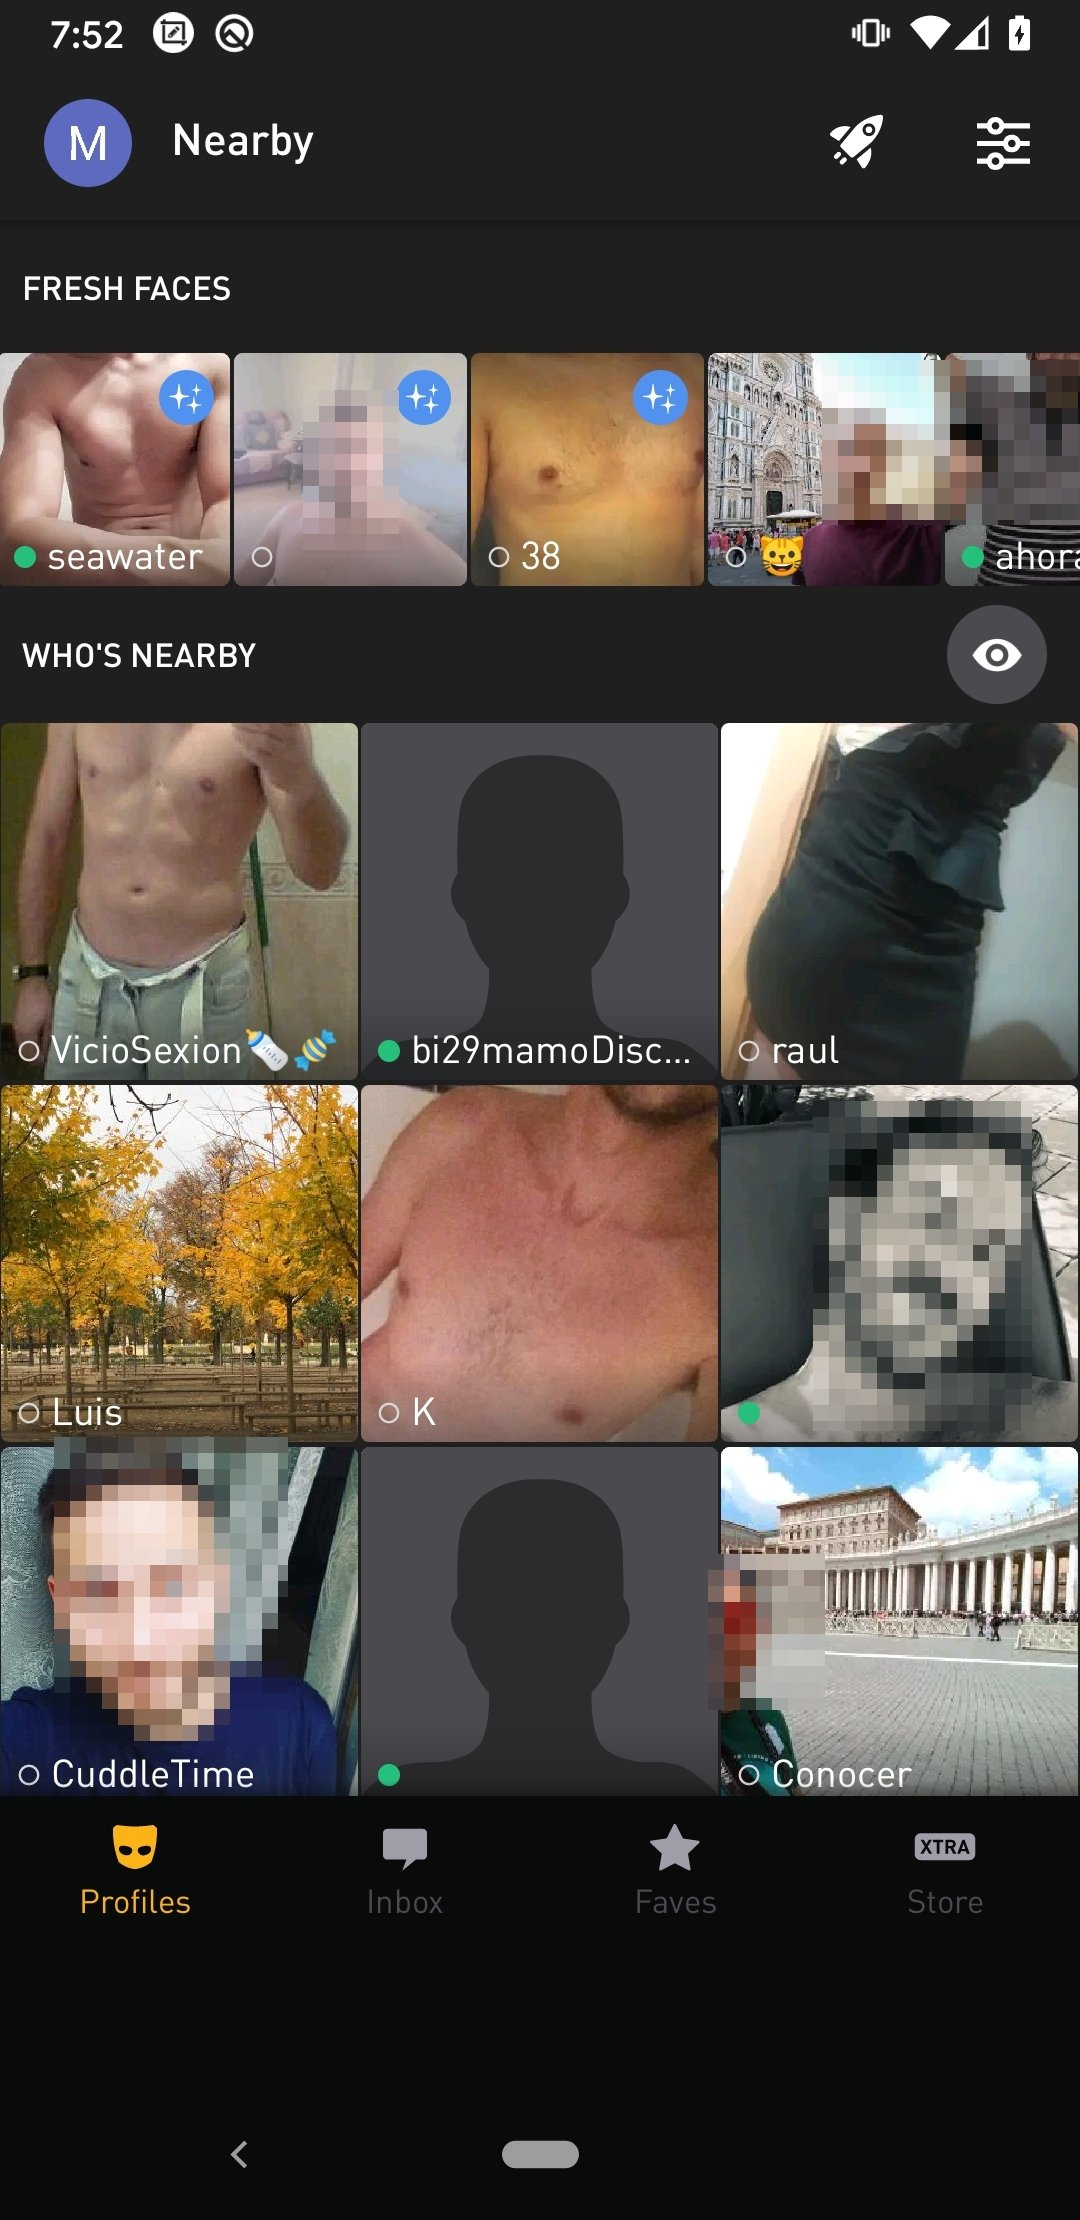 Grindr Android image 5